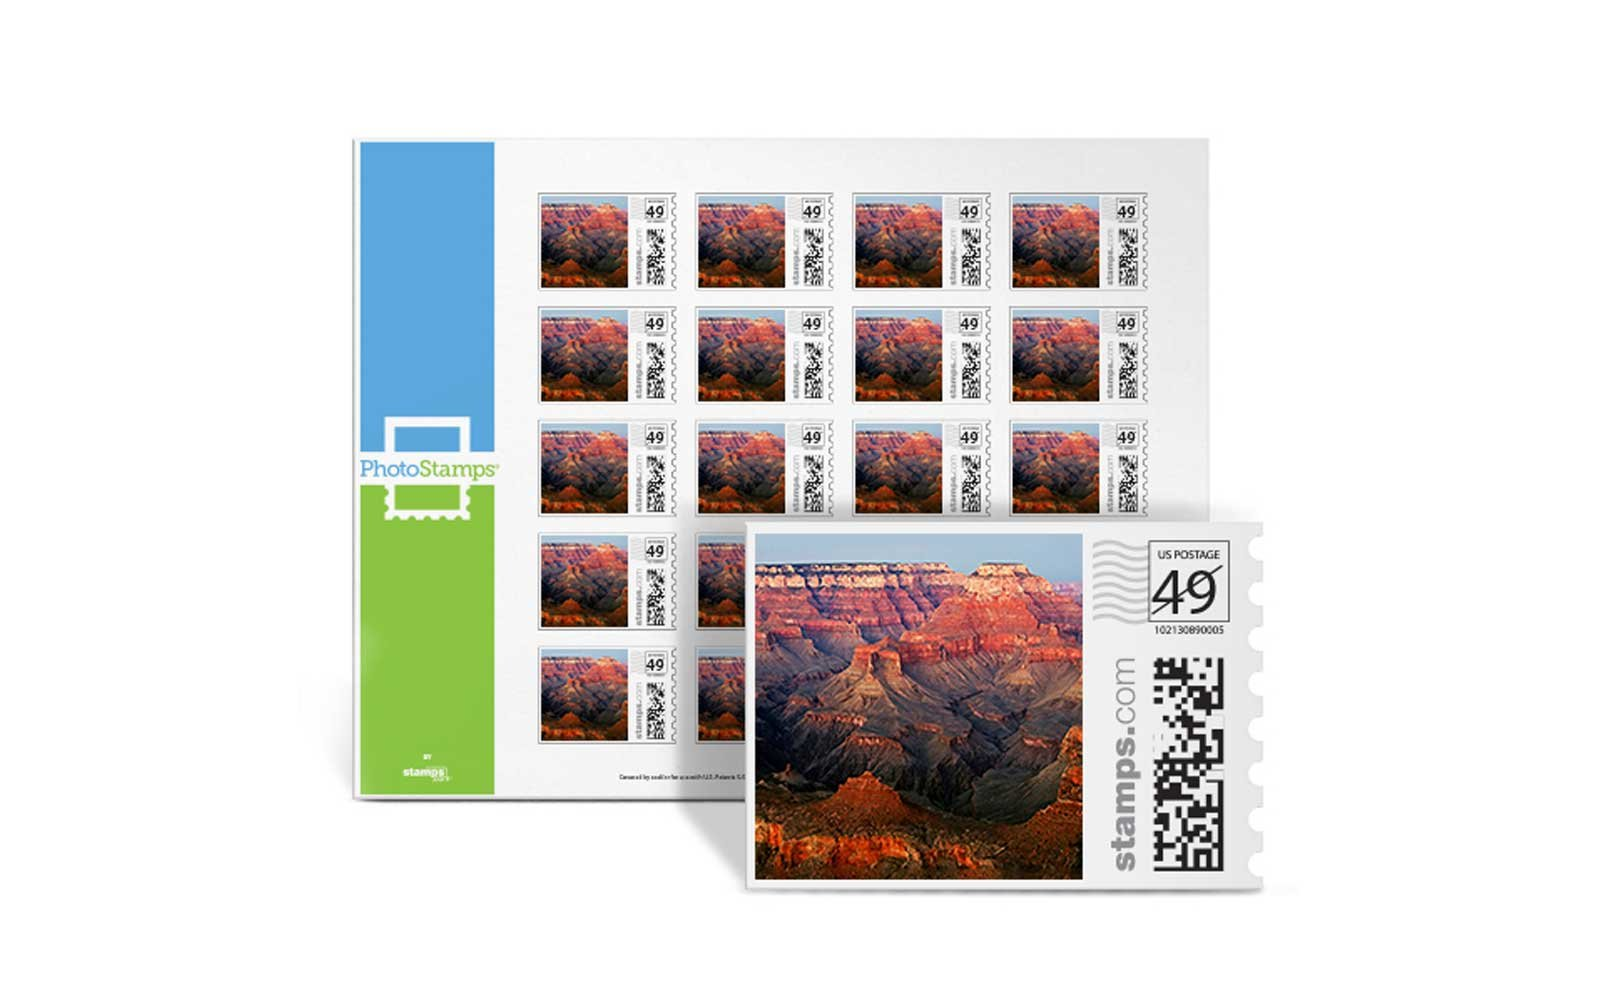 Postage Stamps, Stamps.com